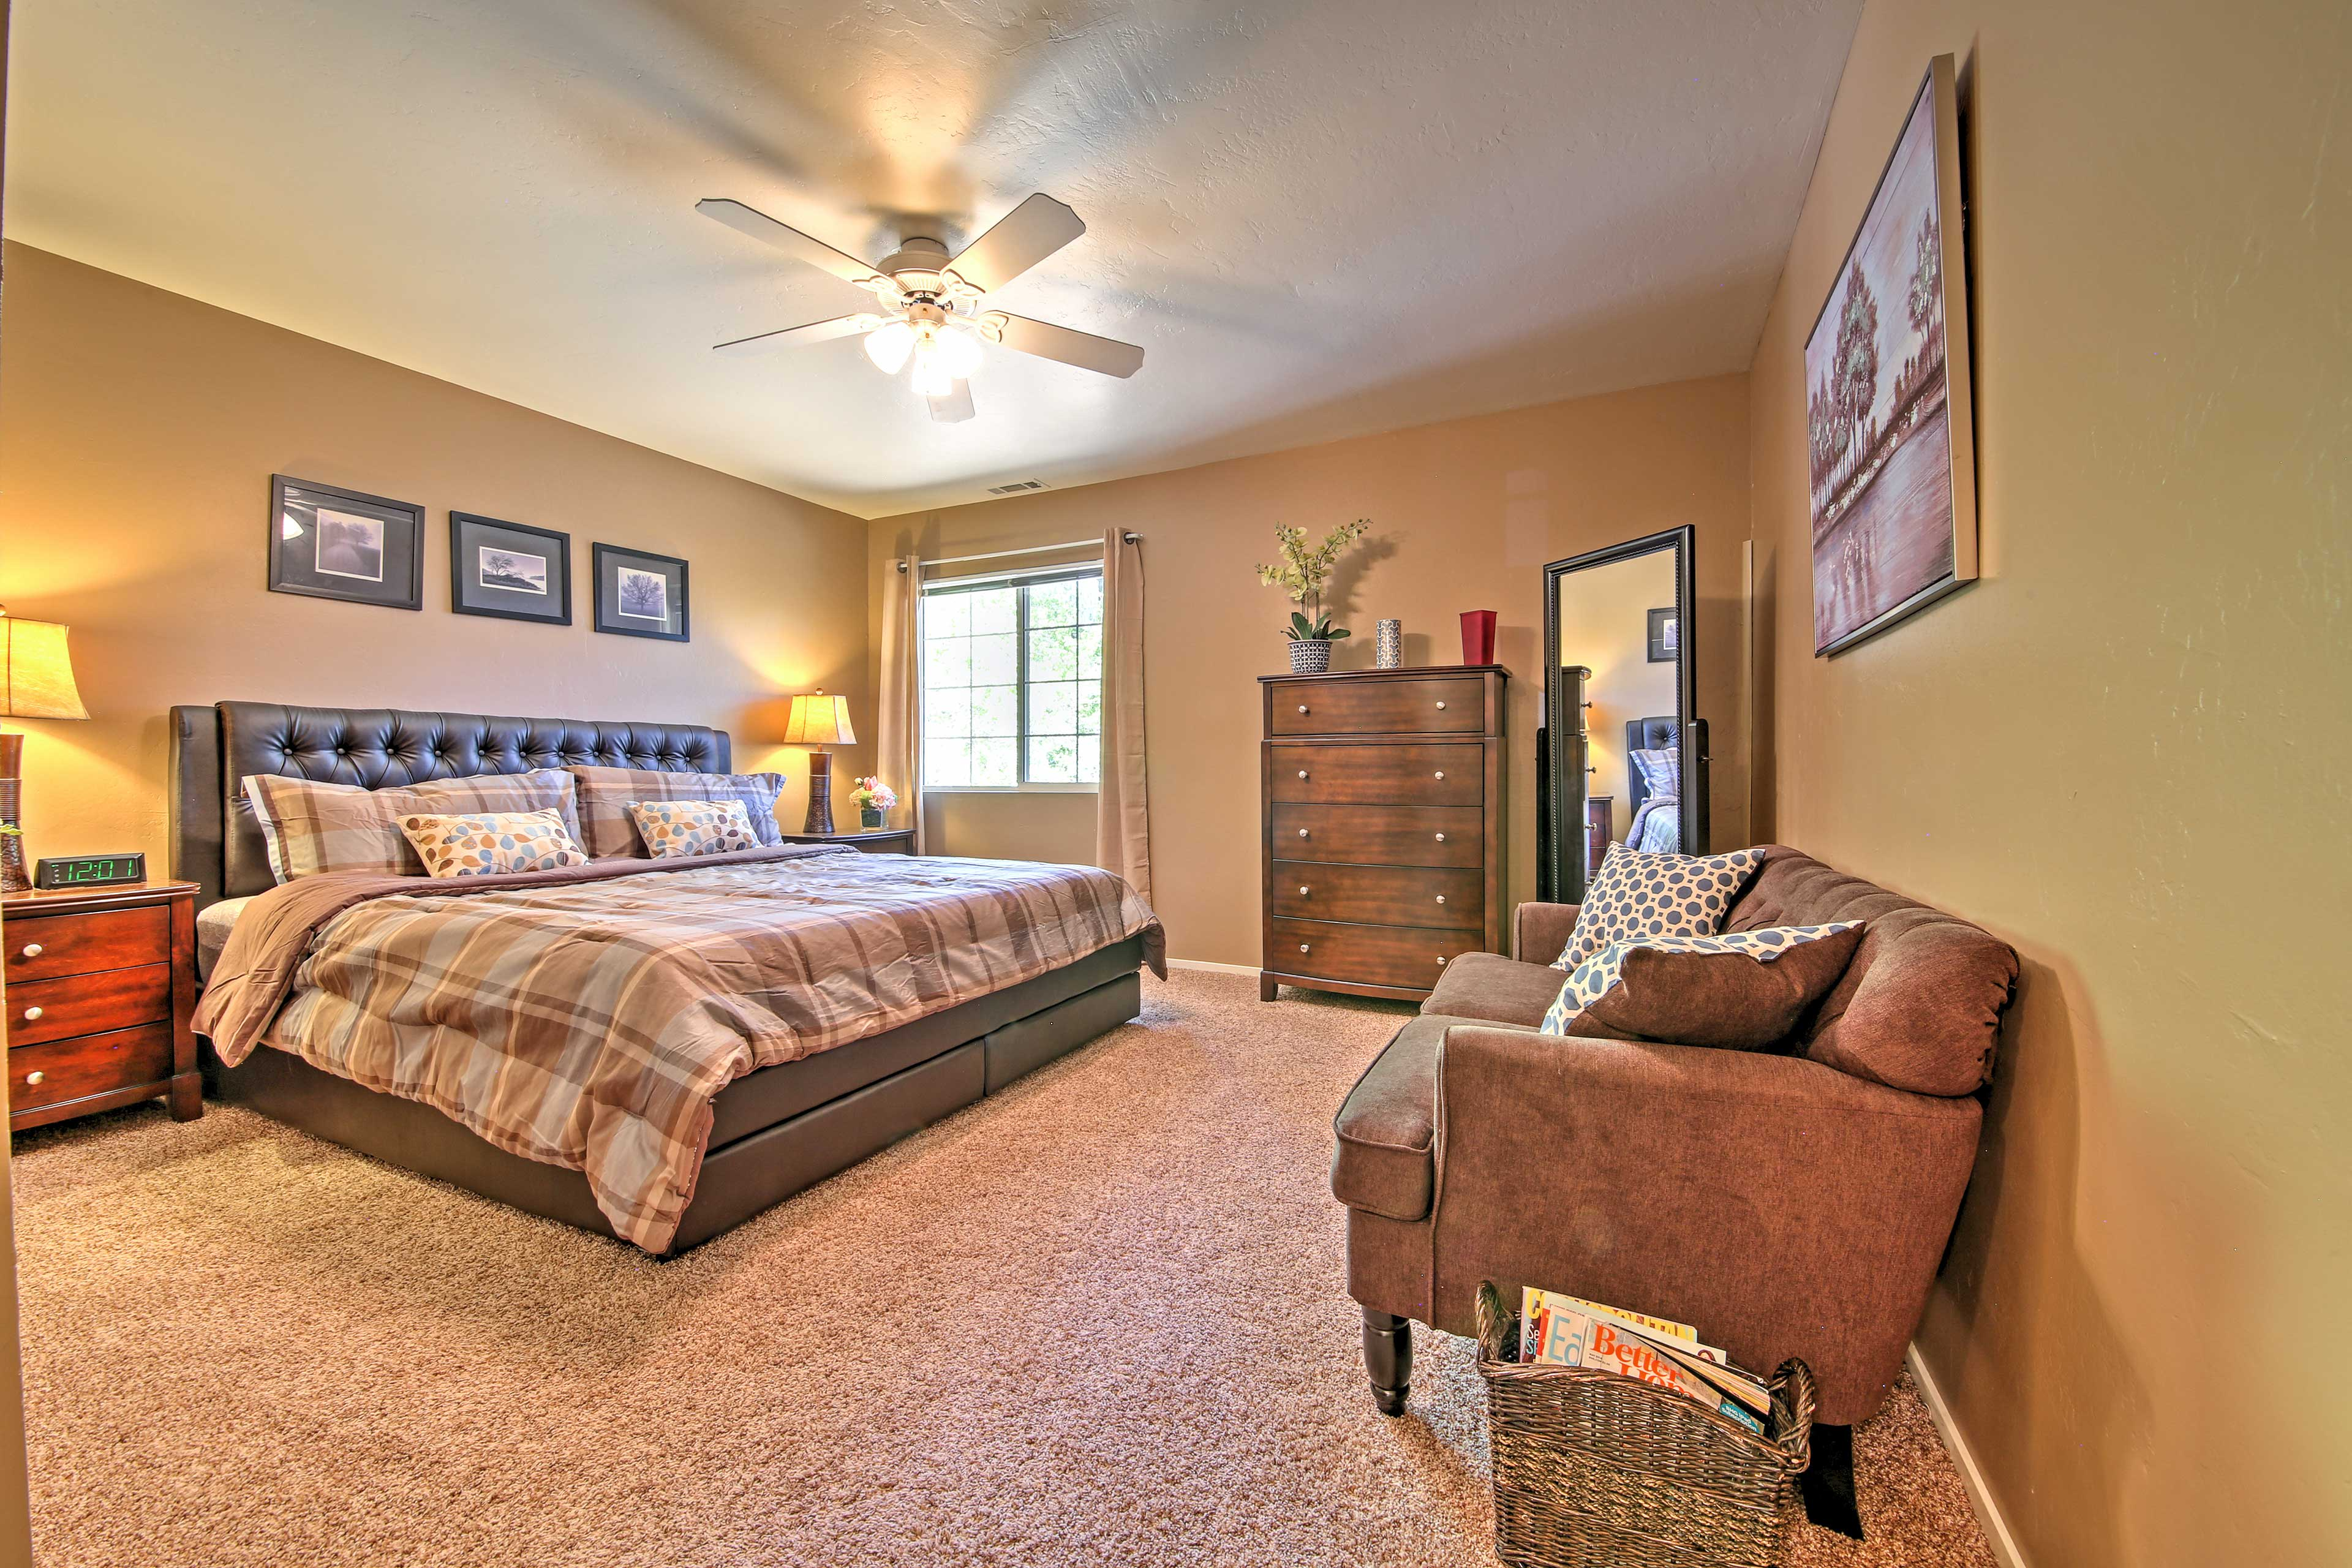 You're sure to have many peaceful slumbers in this large king-sized bed.